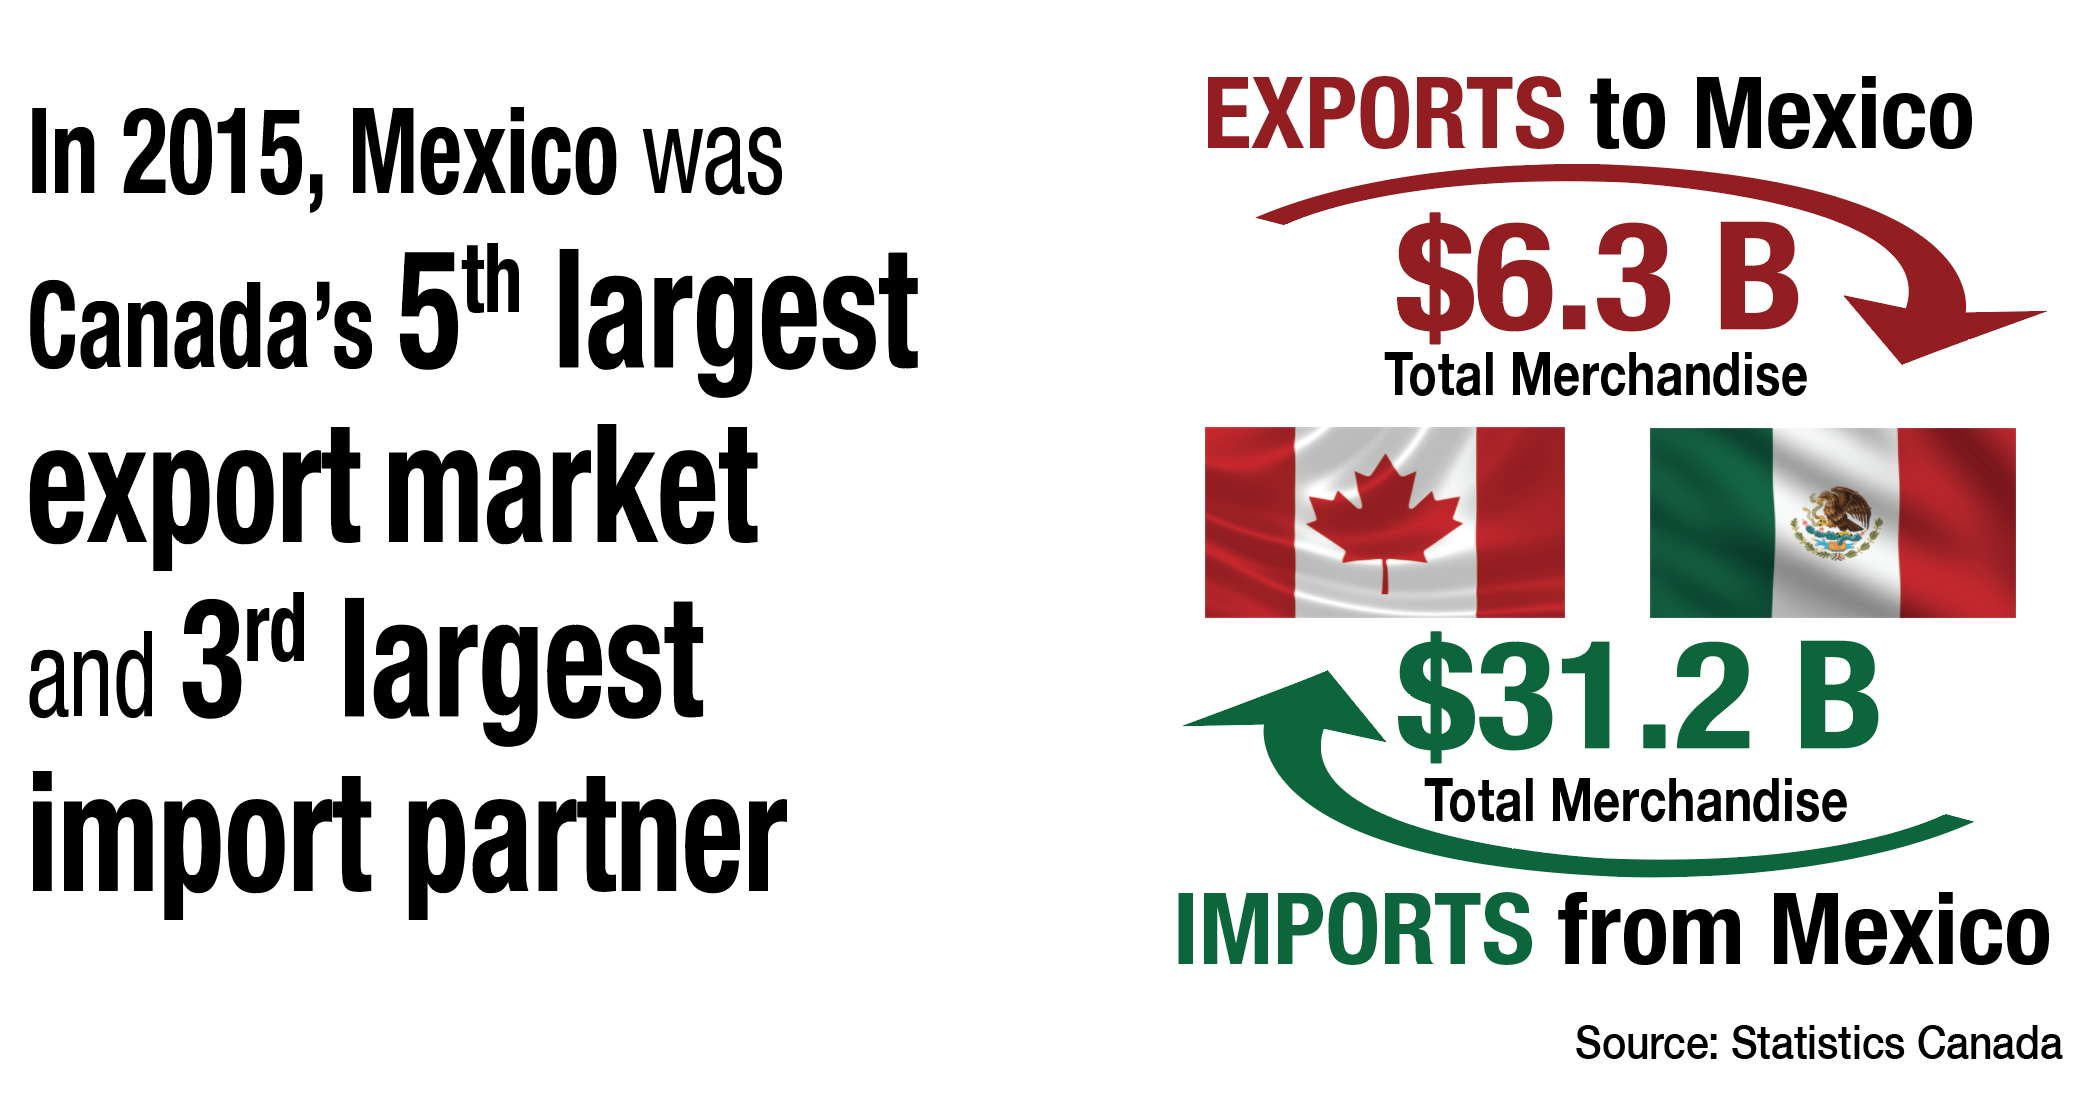 in 2015 natural resources trade with mexico was dominated by the minerals and metals sector